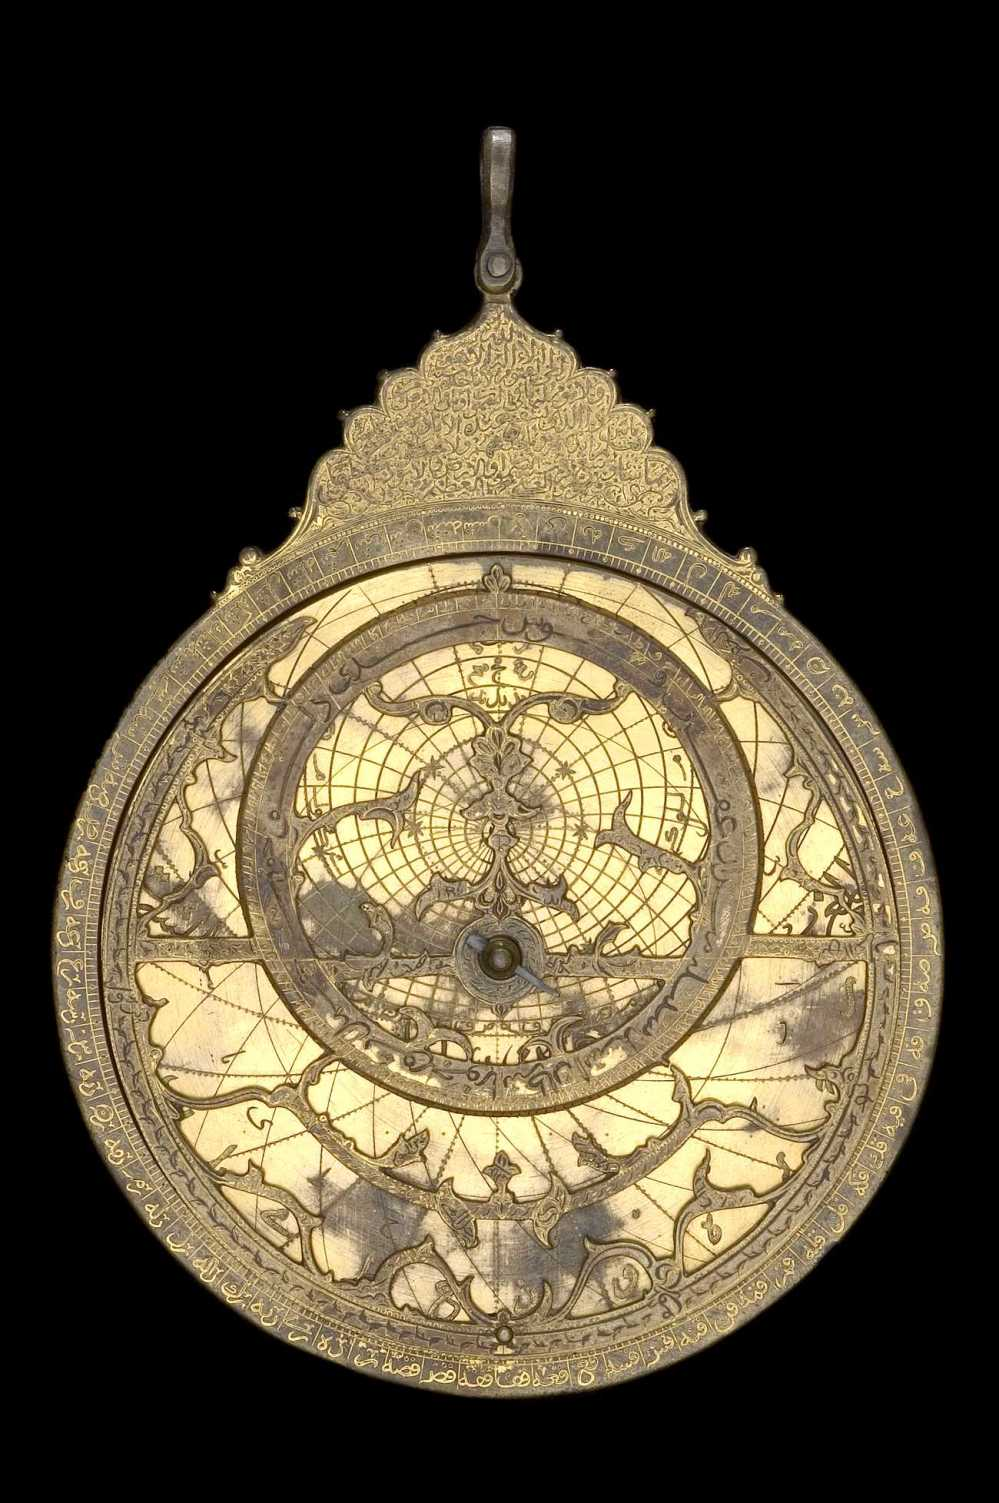 preview image for Astrolabe, by Muhammad Mahdi al-Yazdi, Persian, c. 1650